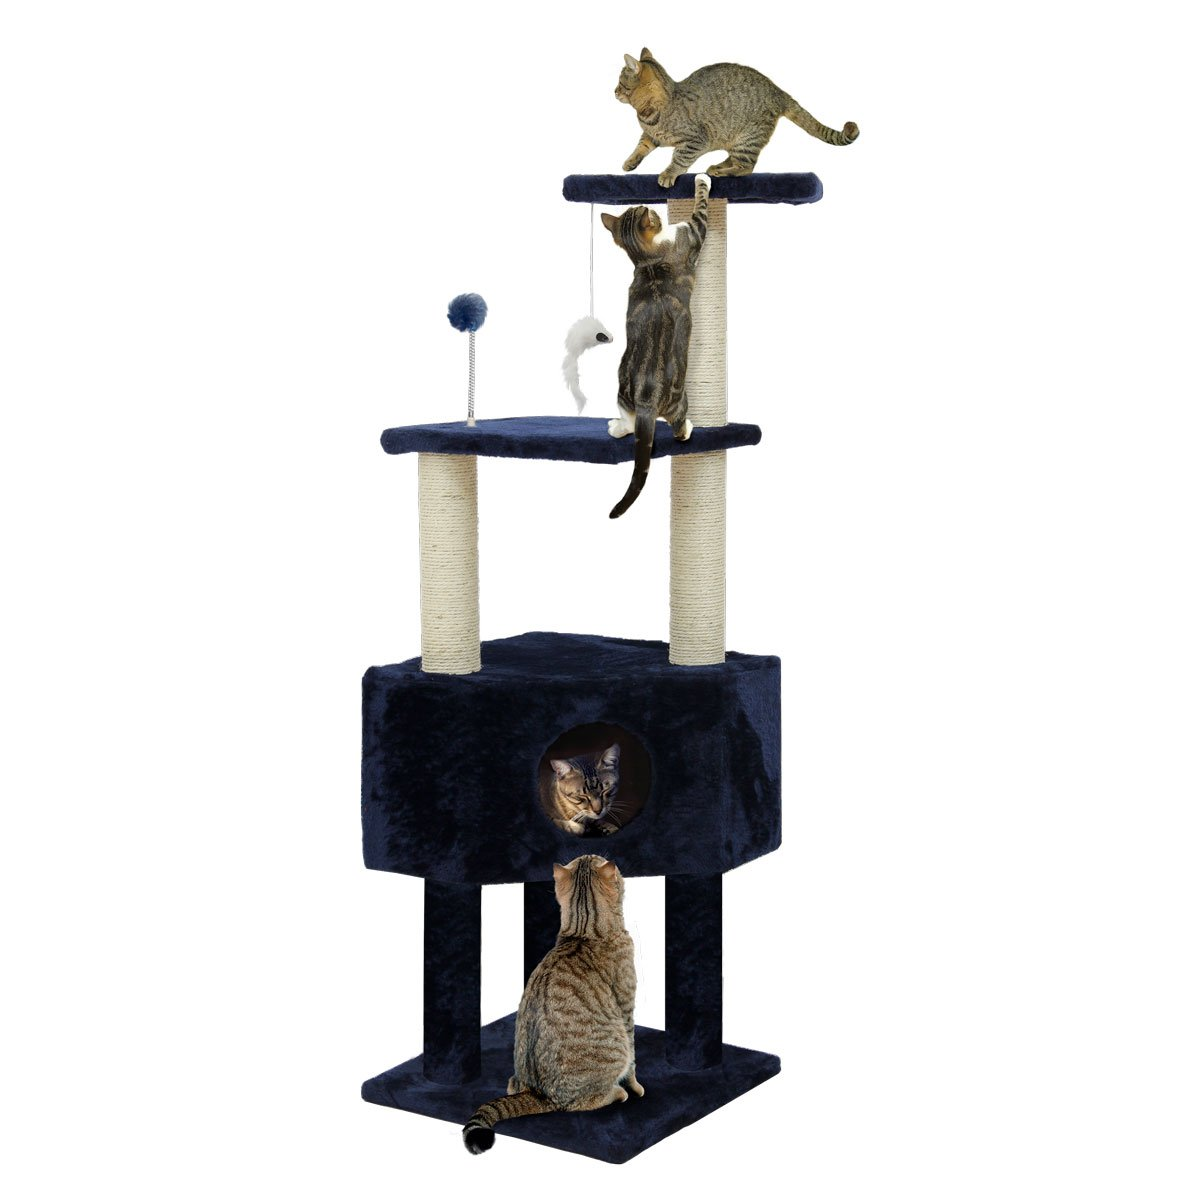 FurHaven Pet Cat Tree   Tiger Tough Cat Tree House Furniture for Cats & Kittens, Clubhouse Playground, bluee